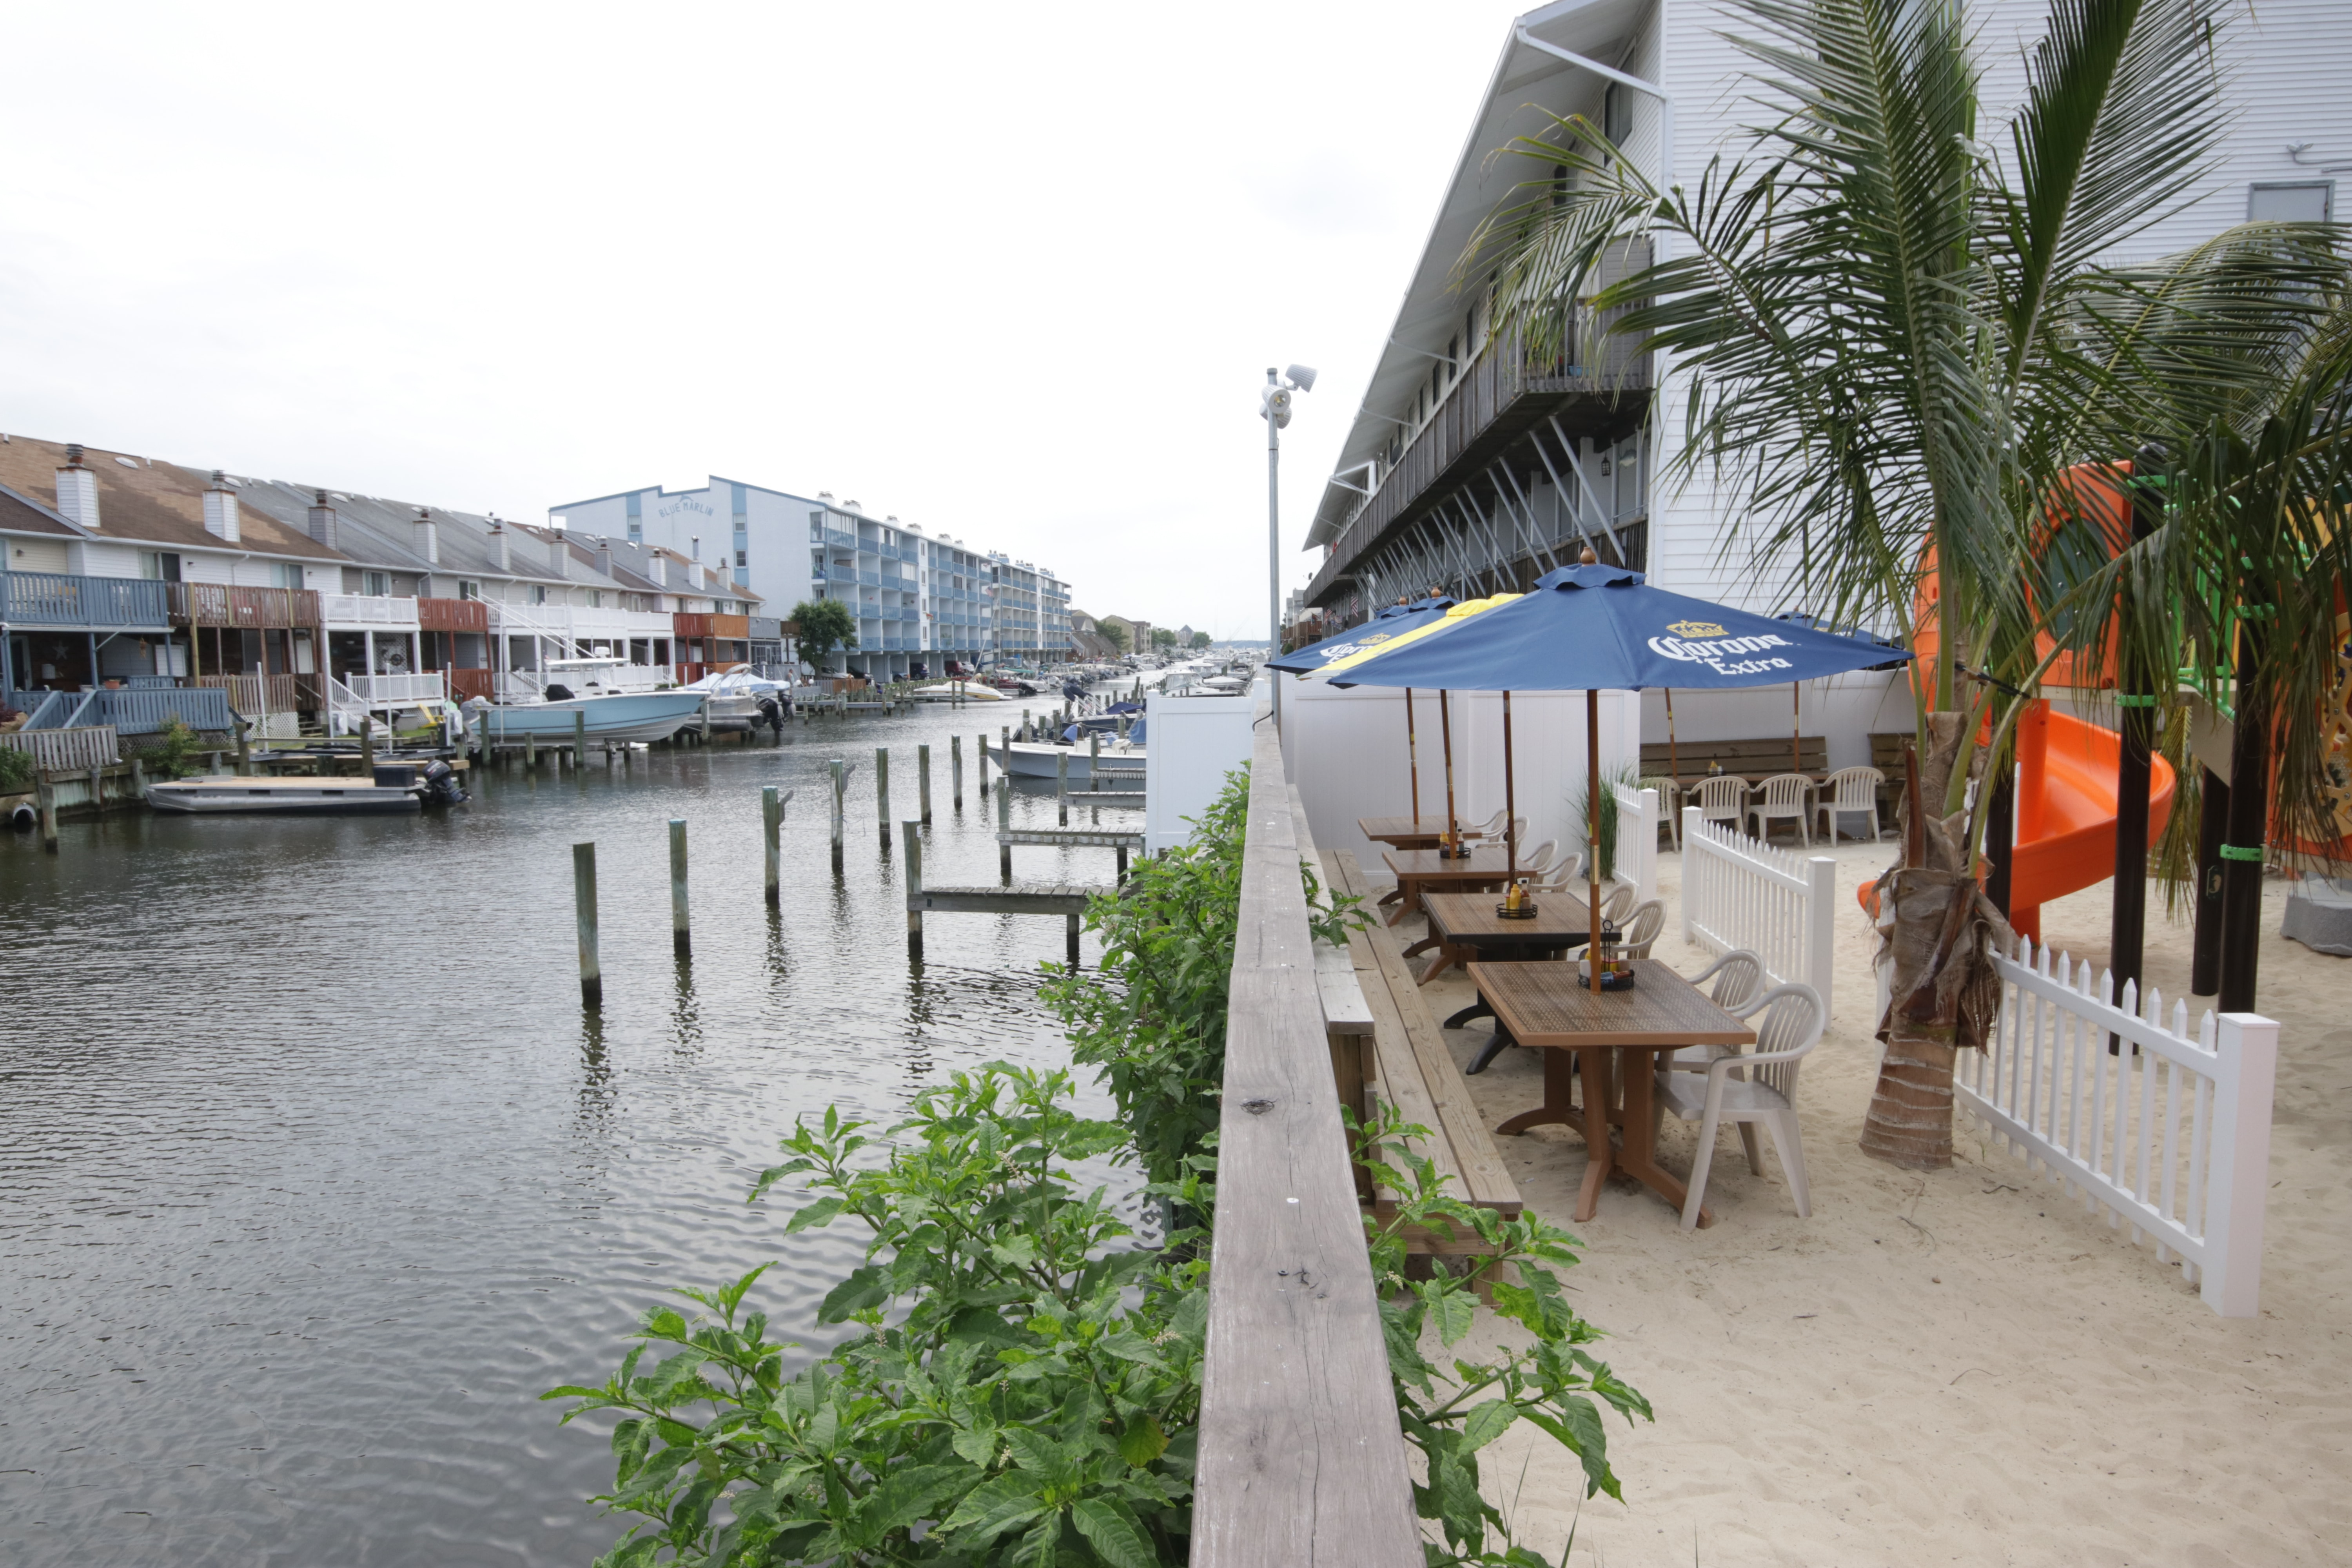 Tailchasers Restaurant & Dock Bar image 1